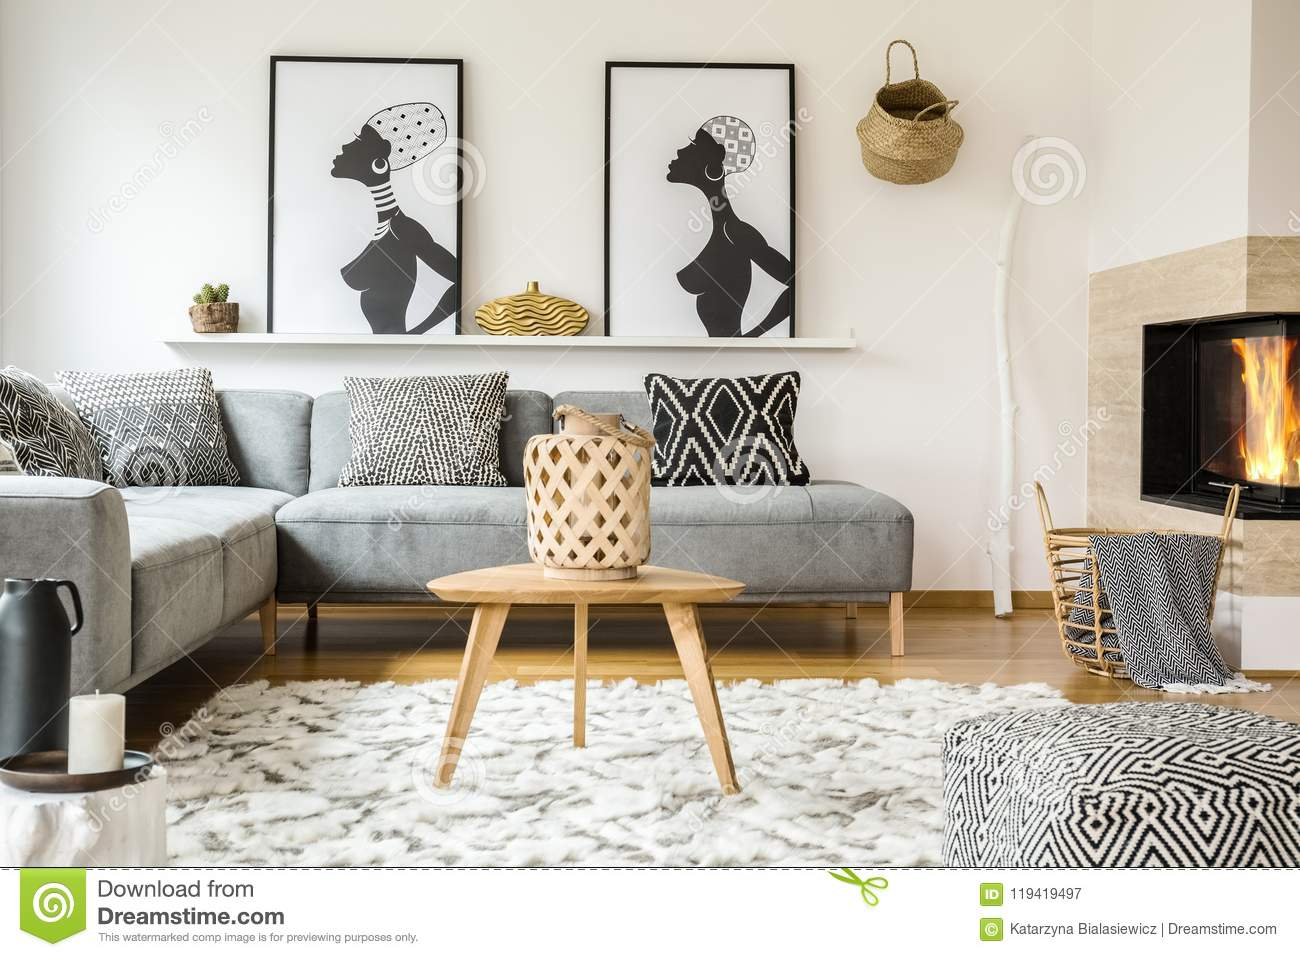 Wooden Table On Carpet In African Living Room Interior With Patterned  Cushions On Grey Sofa.